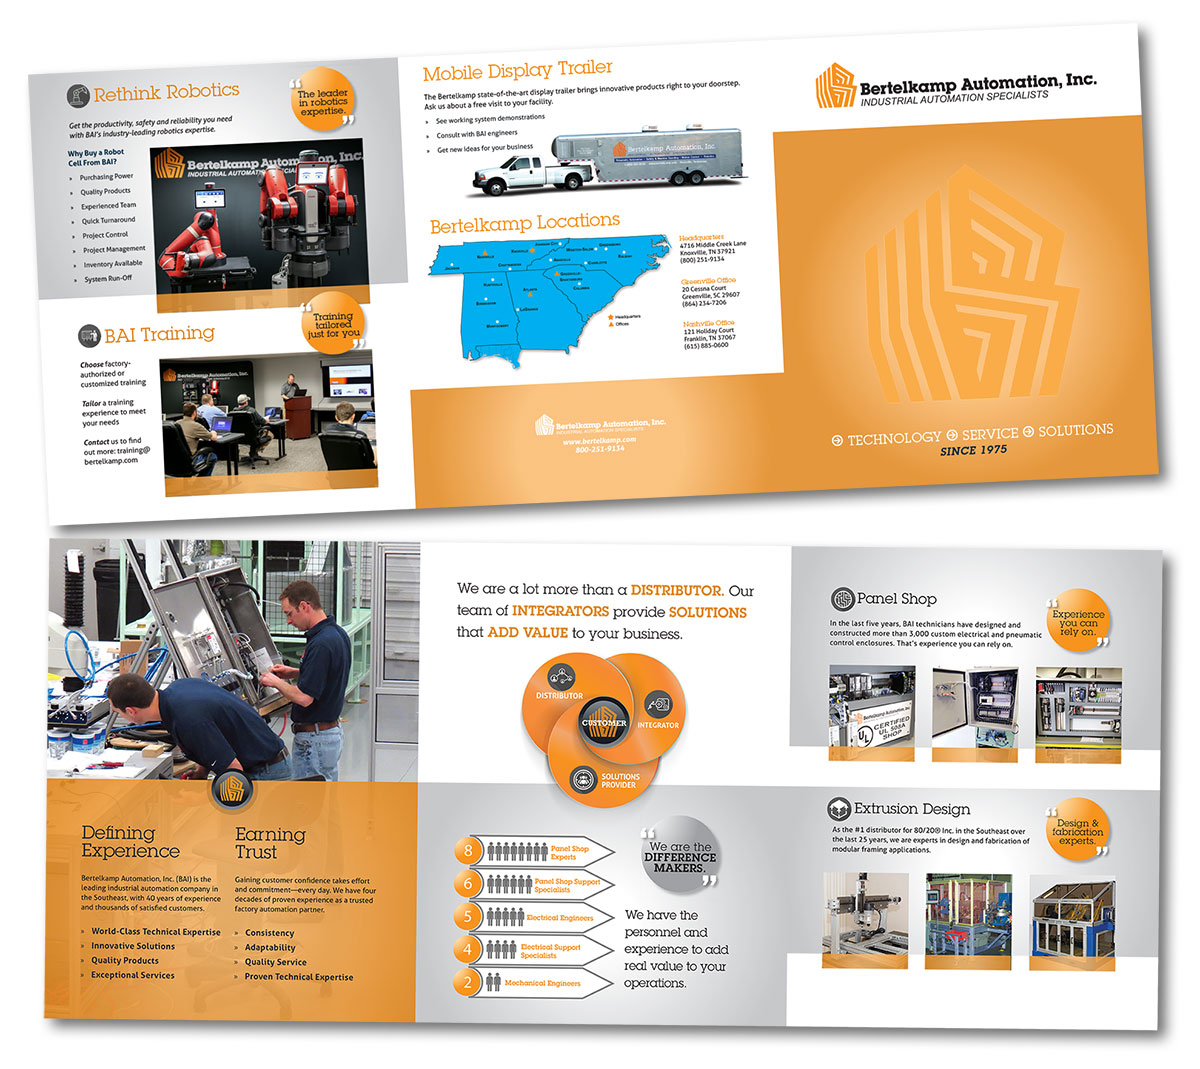 Bertelkamp Automation Brochure